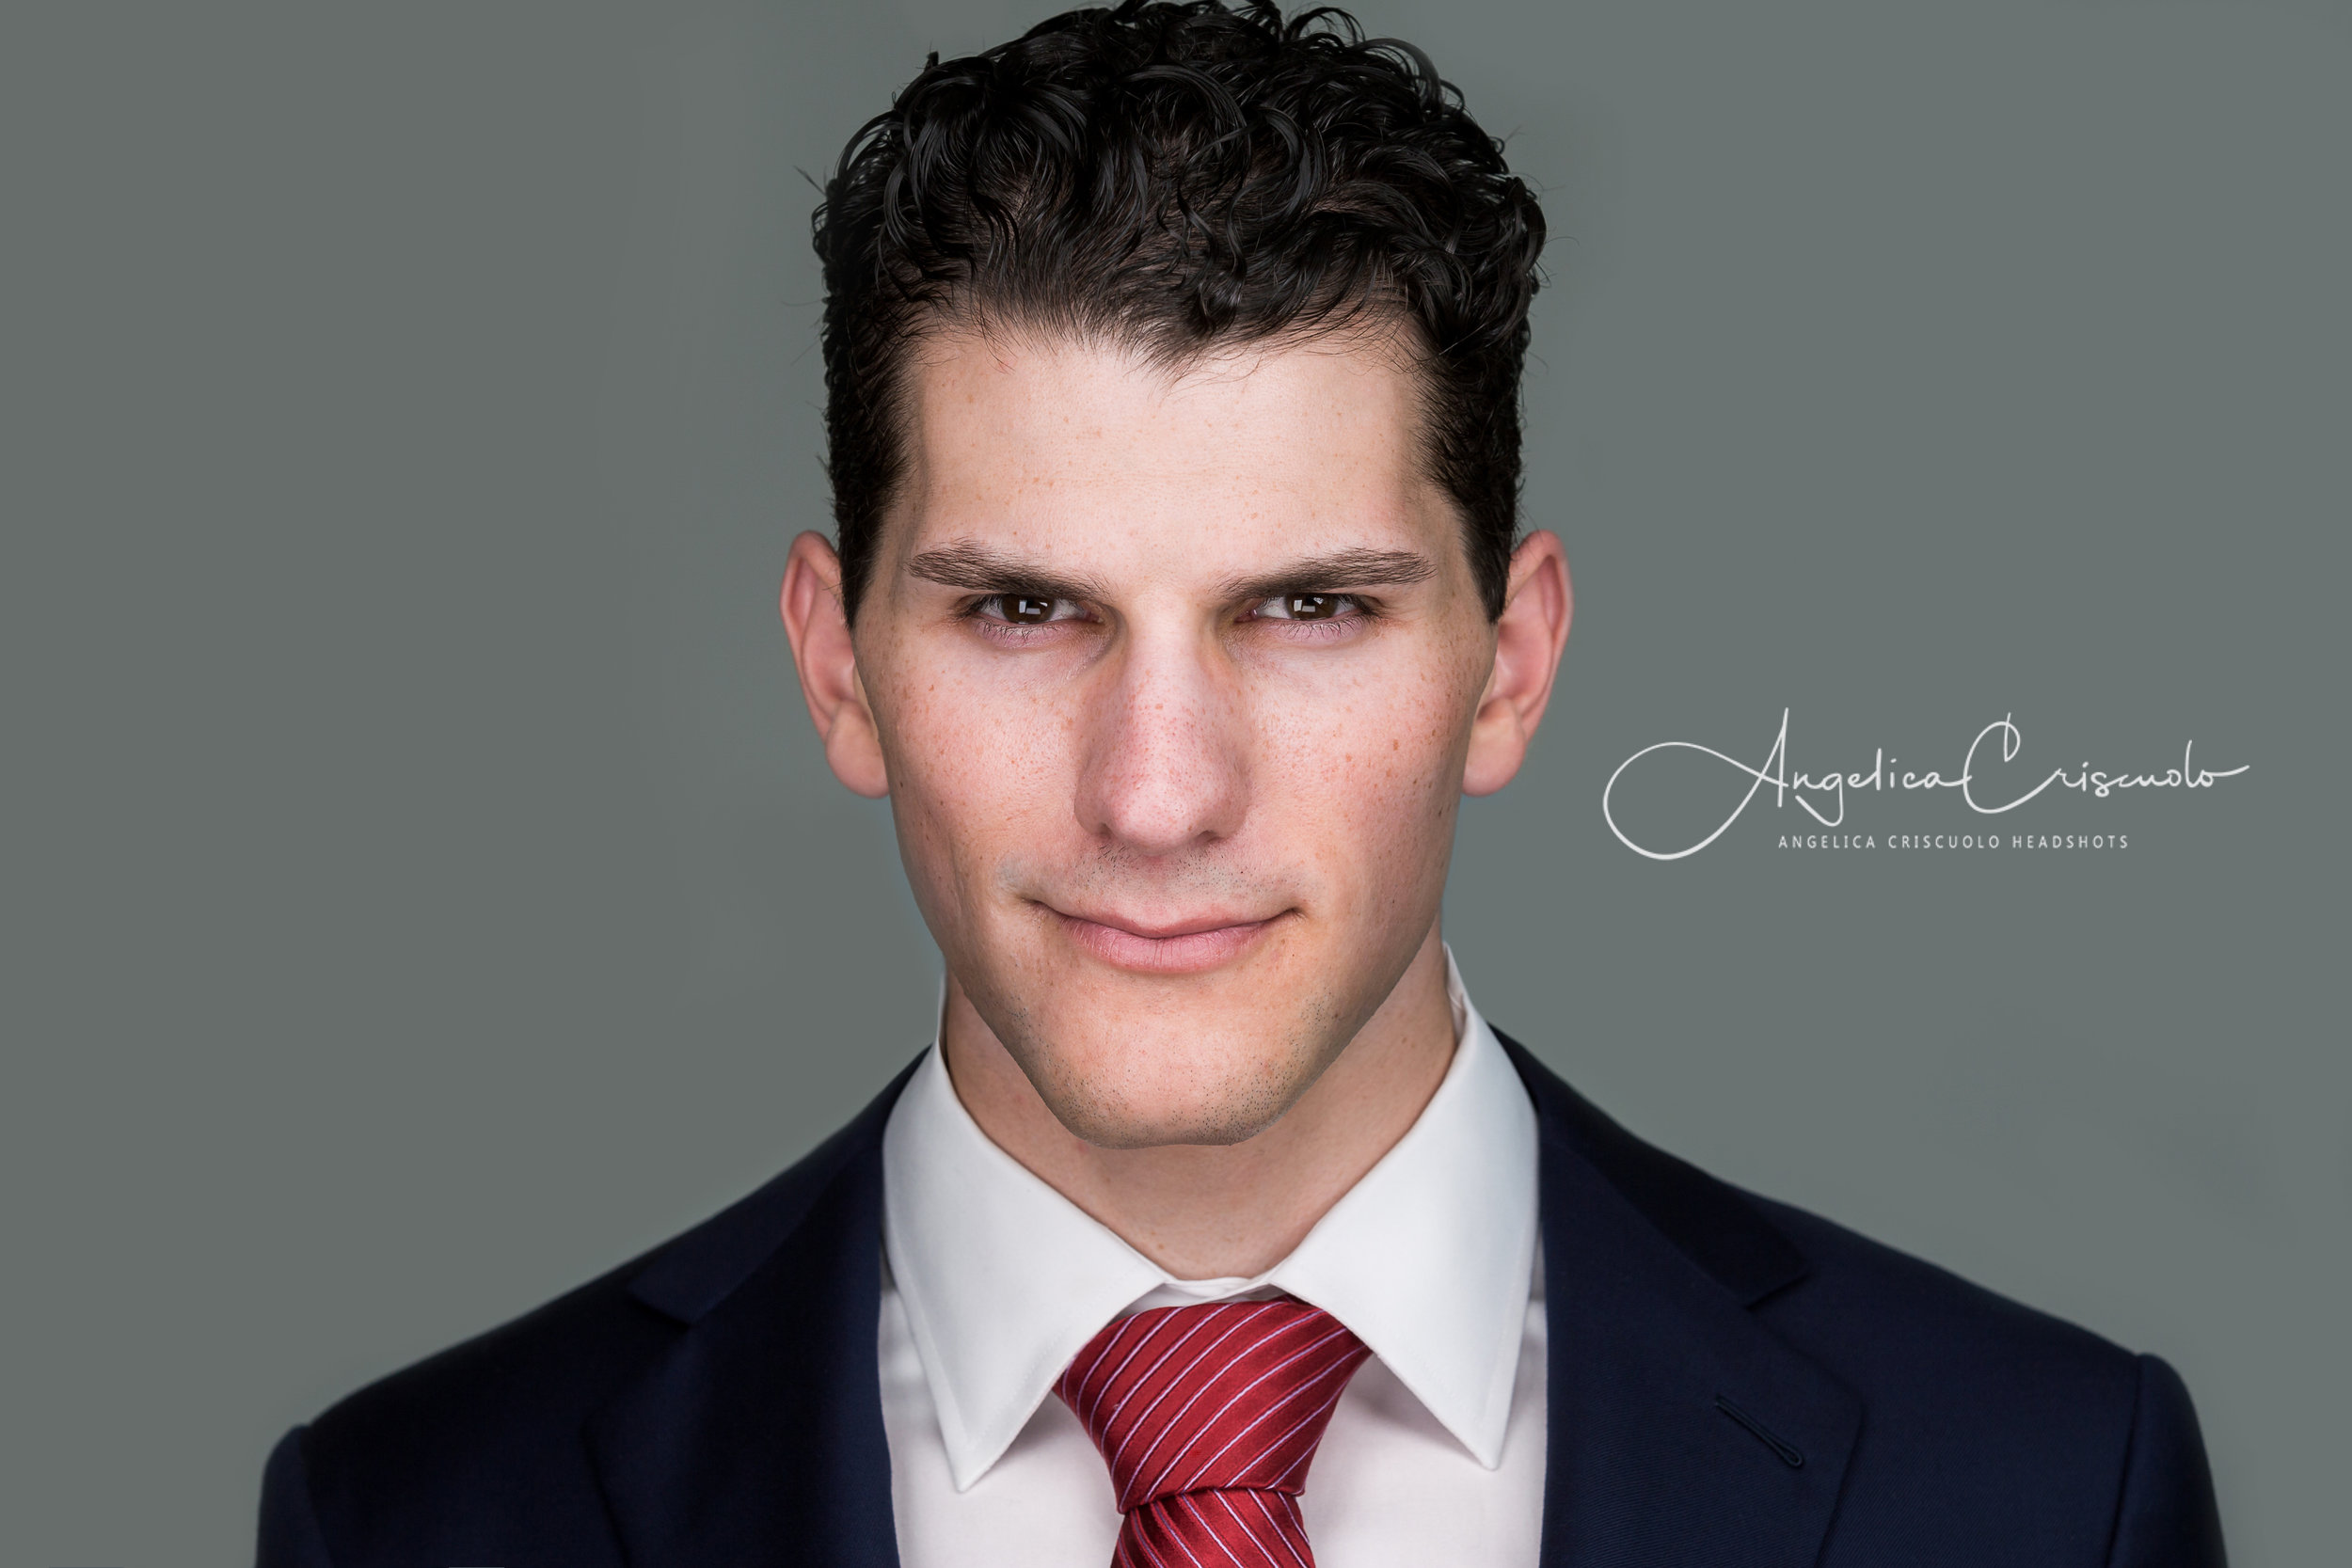 Headshot photographer in NYC for finance